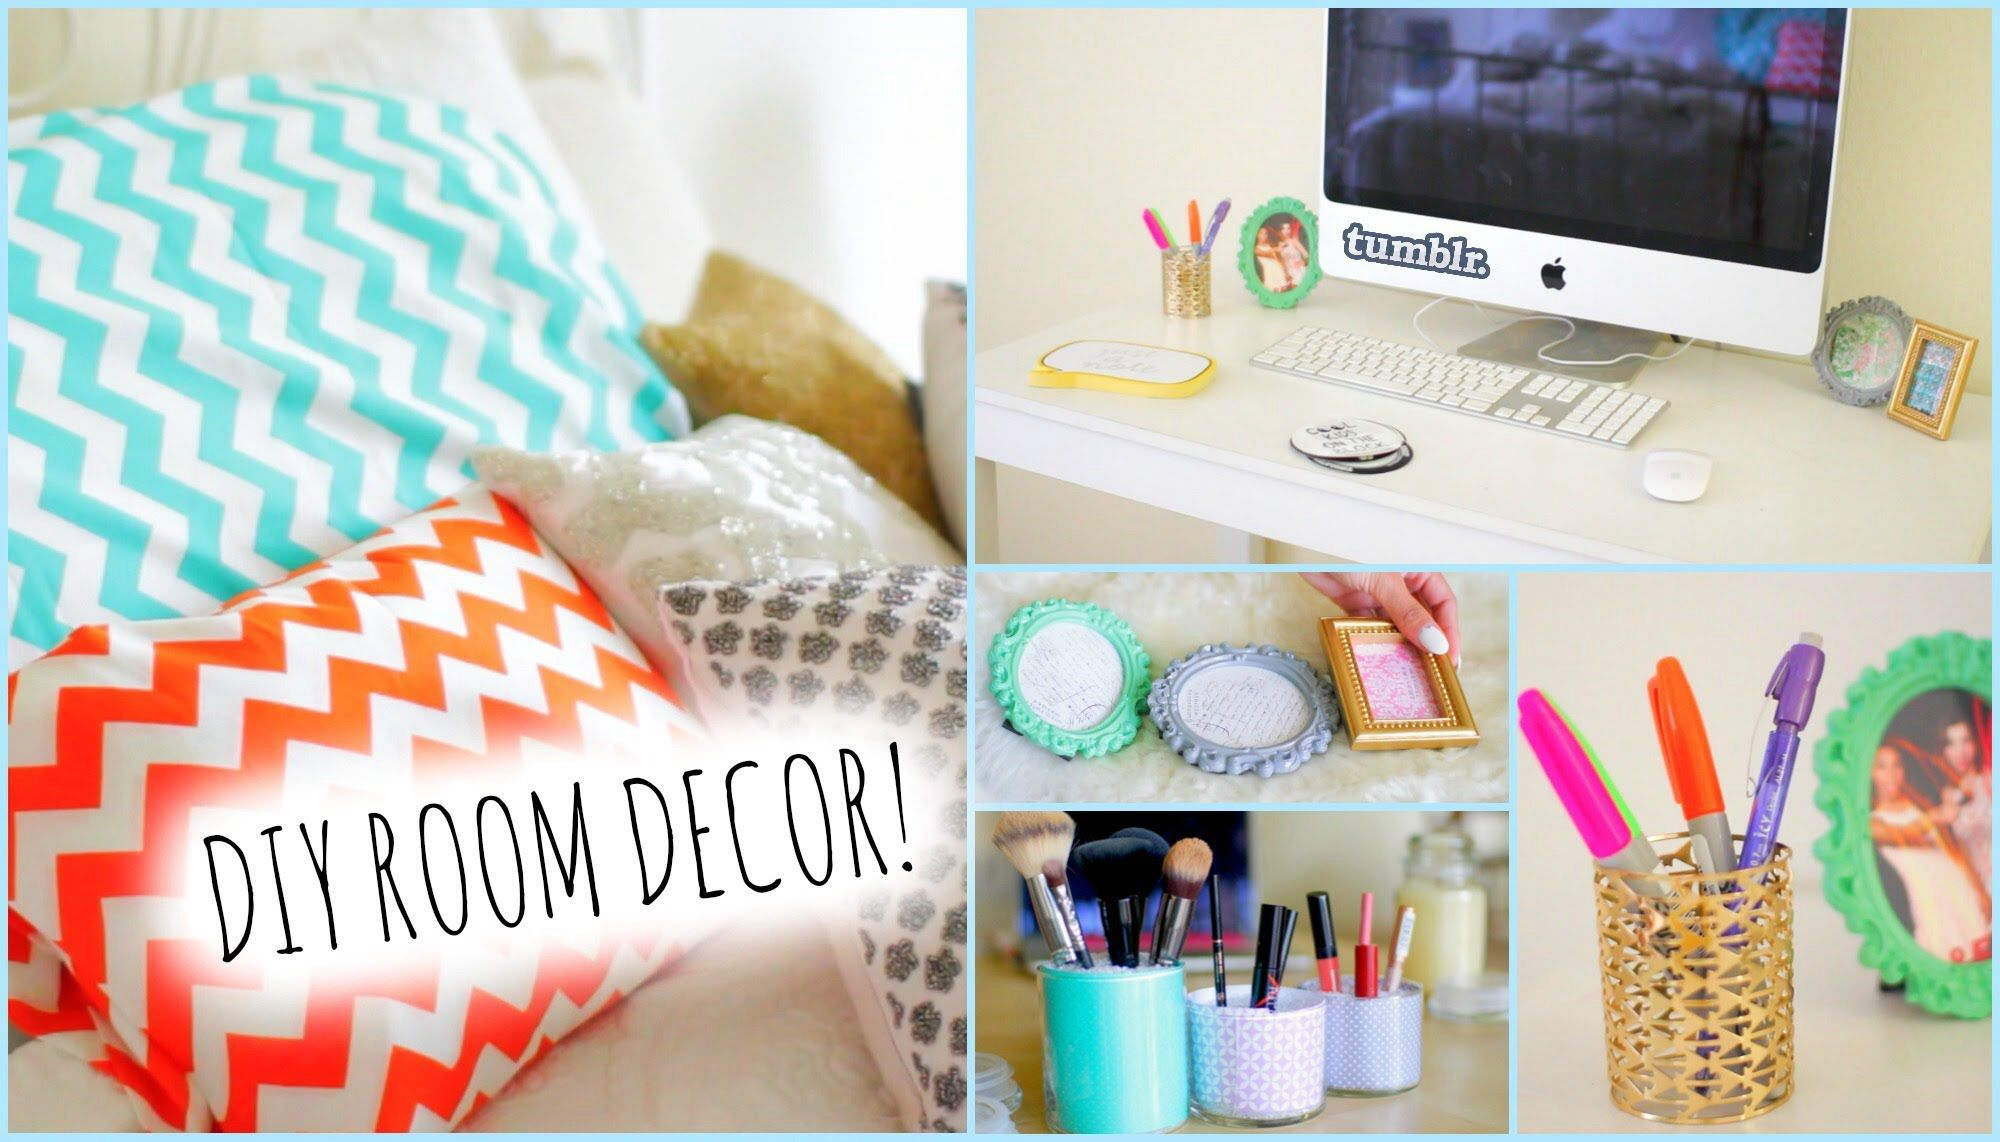 11 Creative DIY Bedroom Decoration Projects Perfect For A